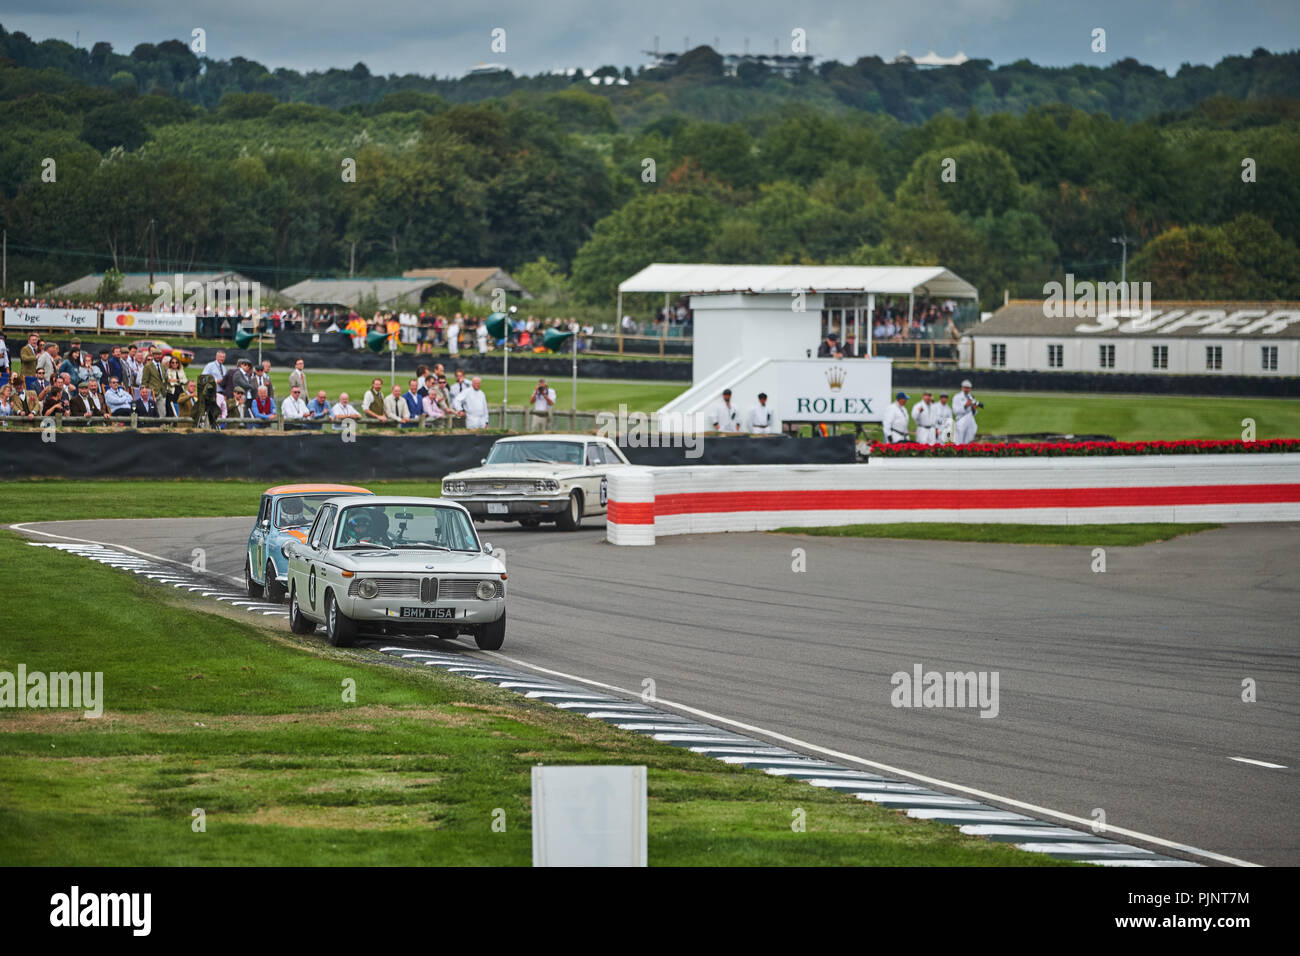 Chichester, West Sussex, UK, 8th September 2018. Car race during the Goodwood Revival at Goodwood Motor Credit: Gergo Toth/Alamy Live News Stock Photo